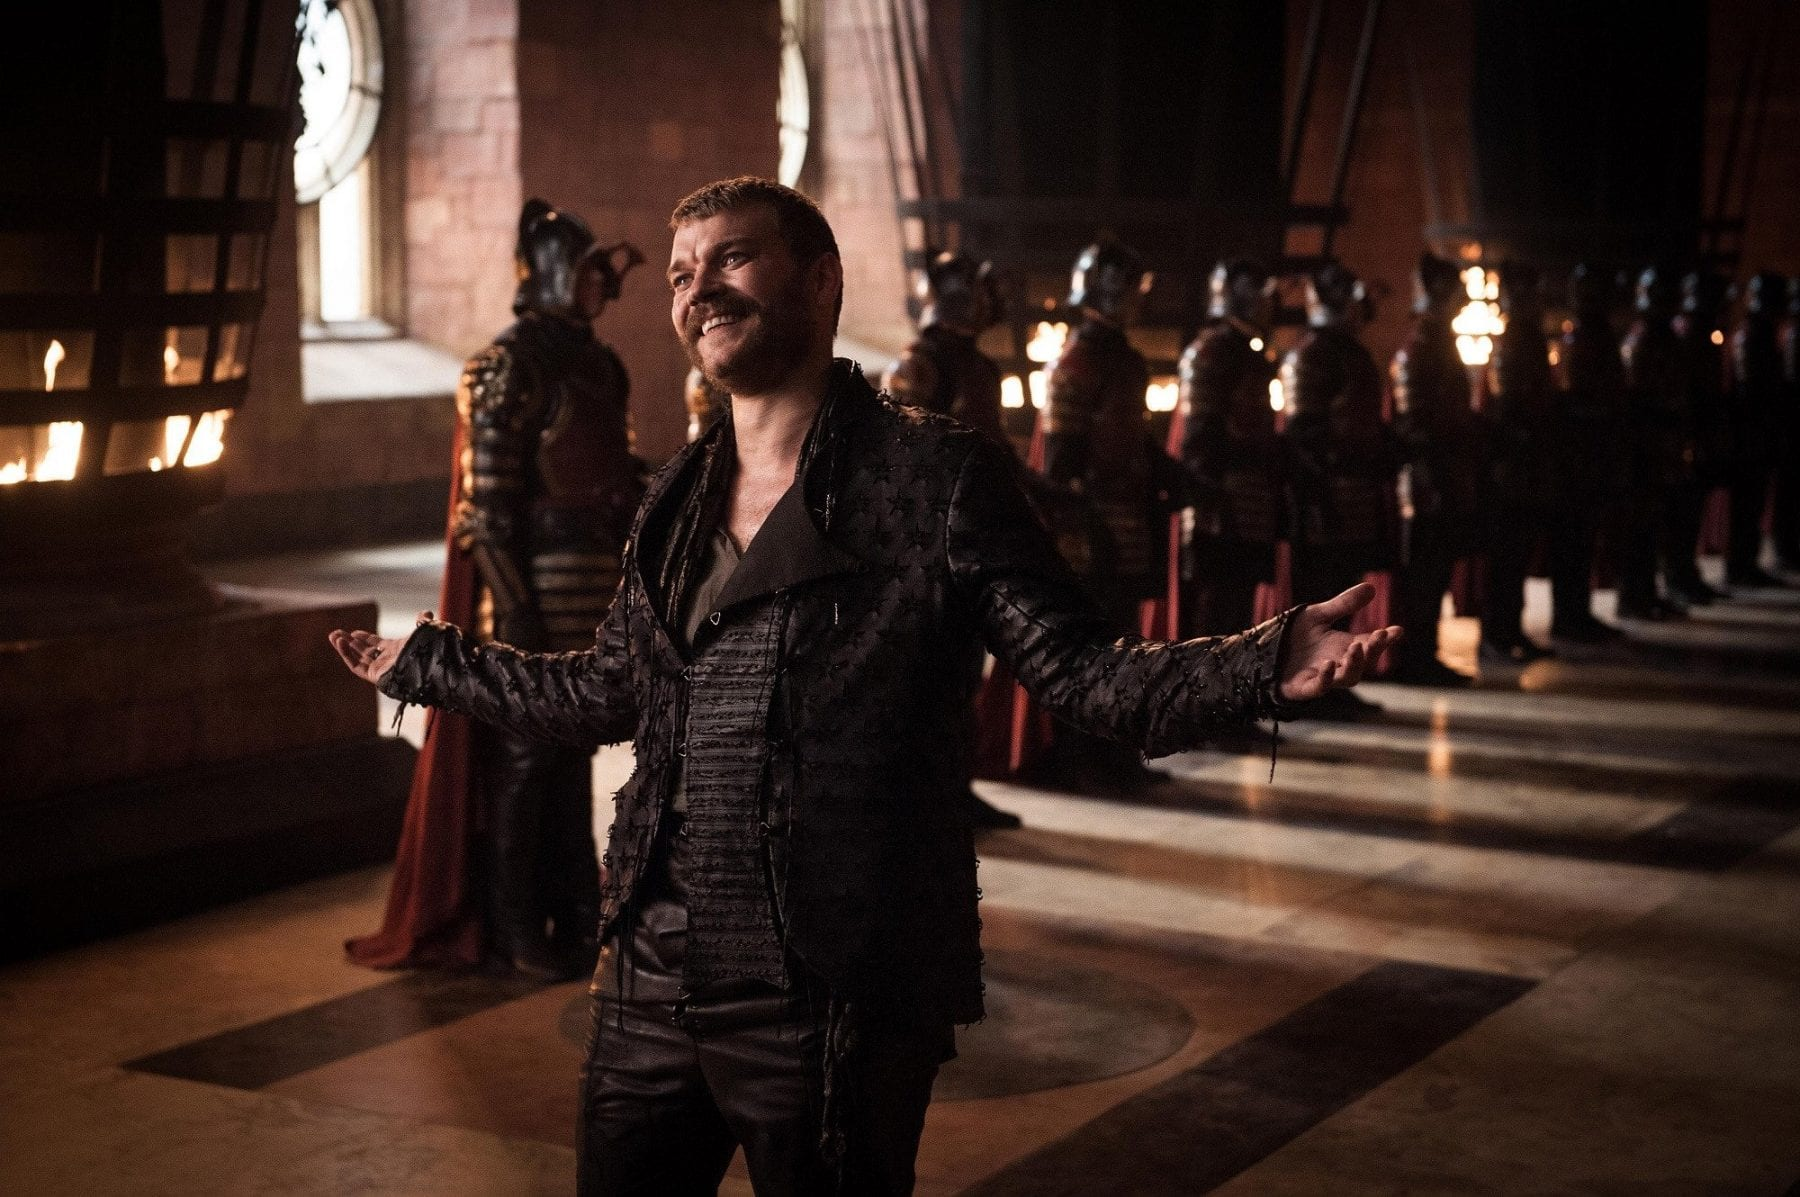 Euron Greyjoy tries to impress Cersei Lannister in the Season 8 premiere of Game of Thrones